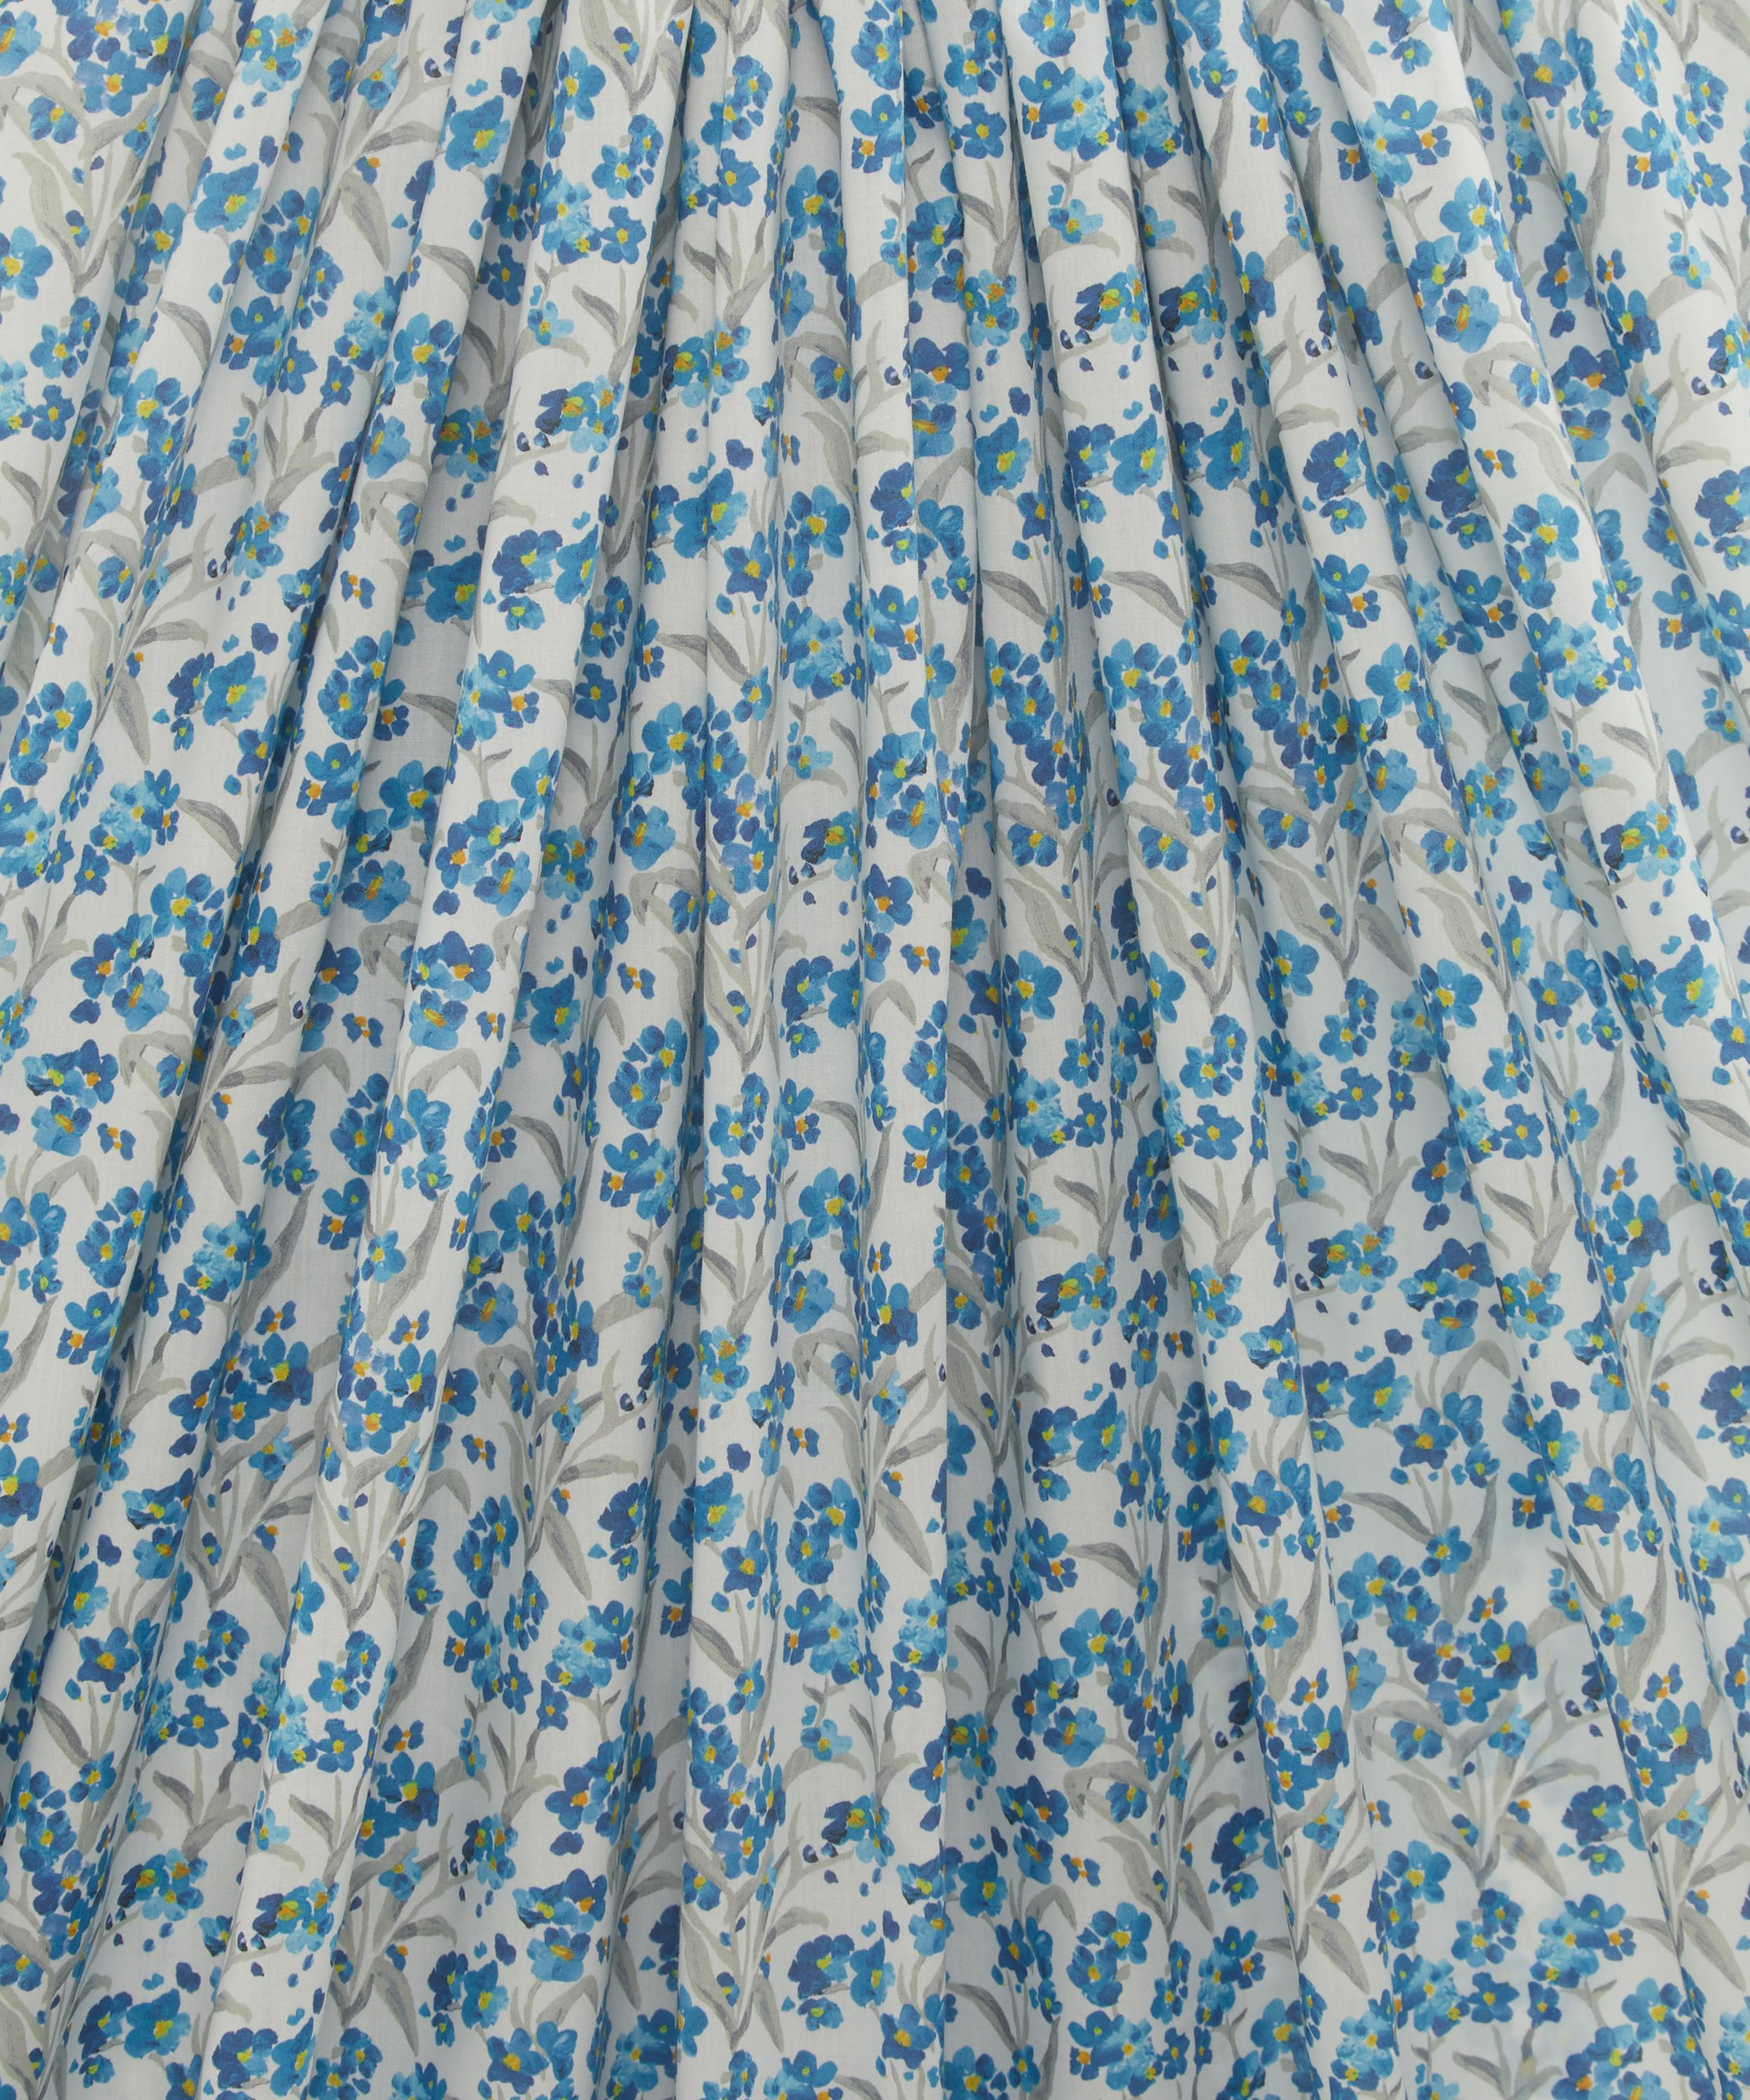 A ORKNEY BLOSSOM LIBERTY TANA LAWN - 100/% COTTON FABRIC